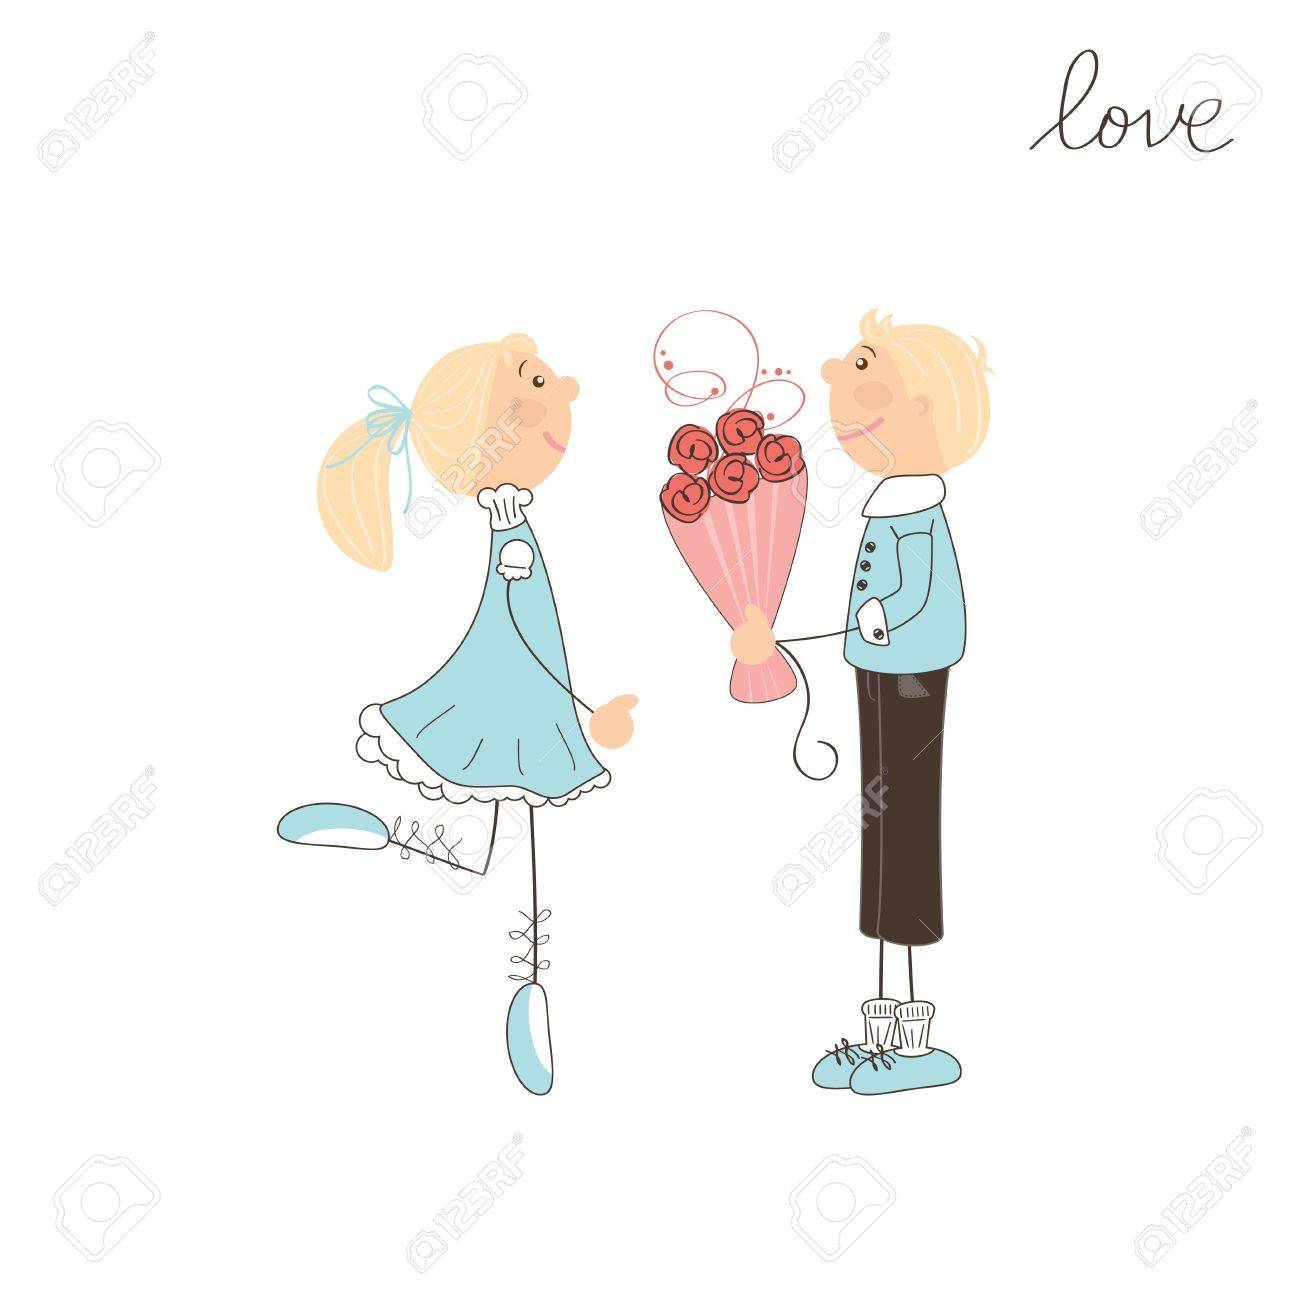 Cute boy present flowers to girl. Valentine day illustration Stock Vector - 17117569